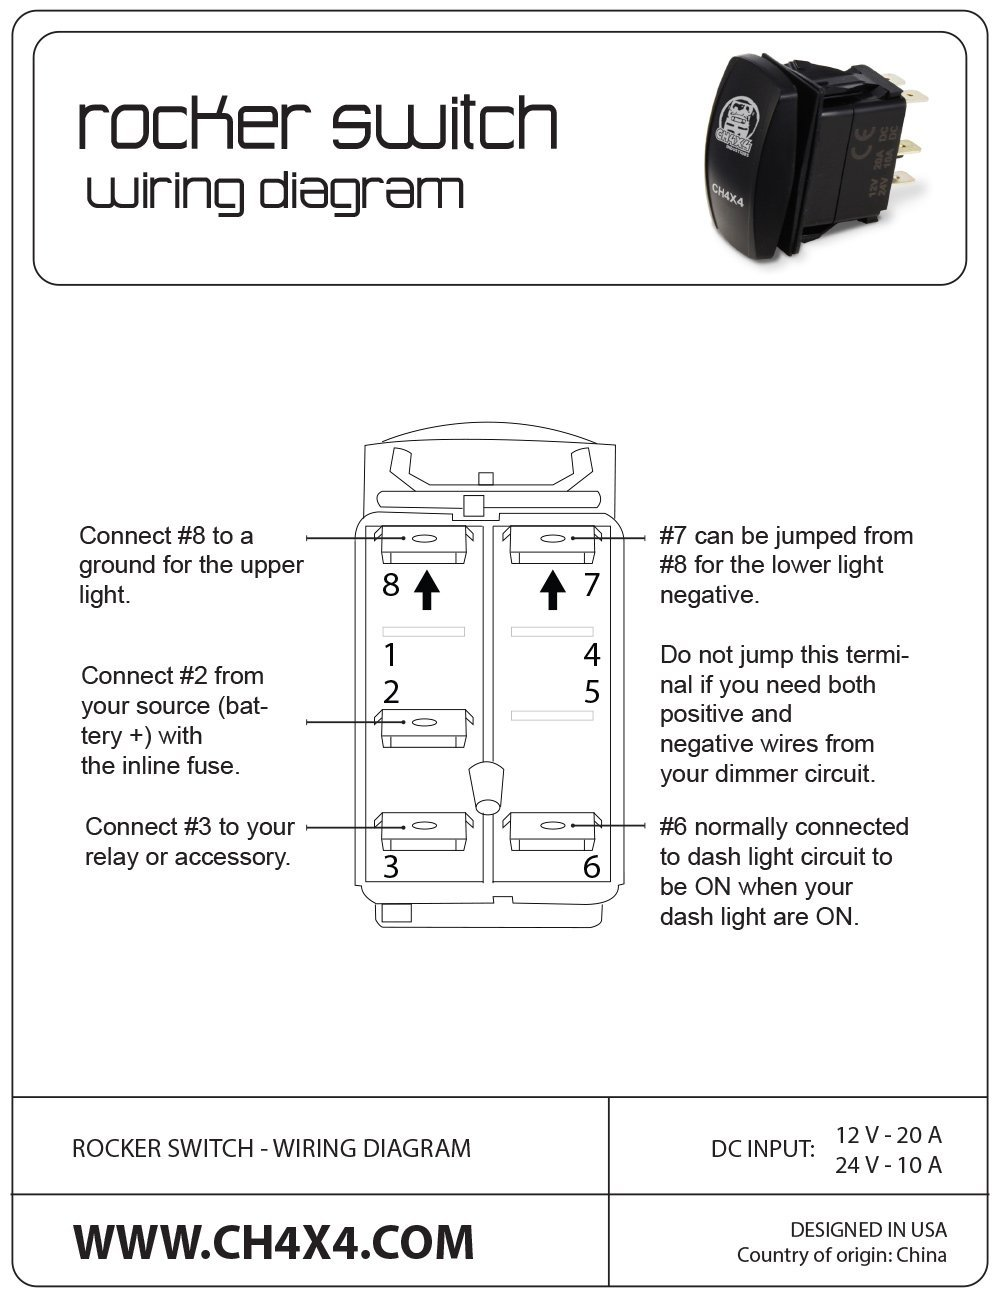 12 volt horn wiring diagram free picture zombie light rocker switch wiring diagram wiring diagram data  zombie light rocker switch wiring